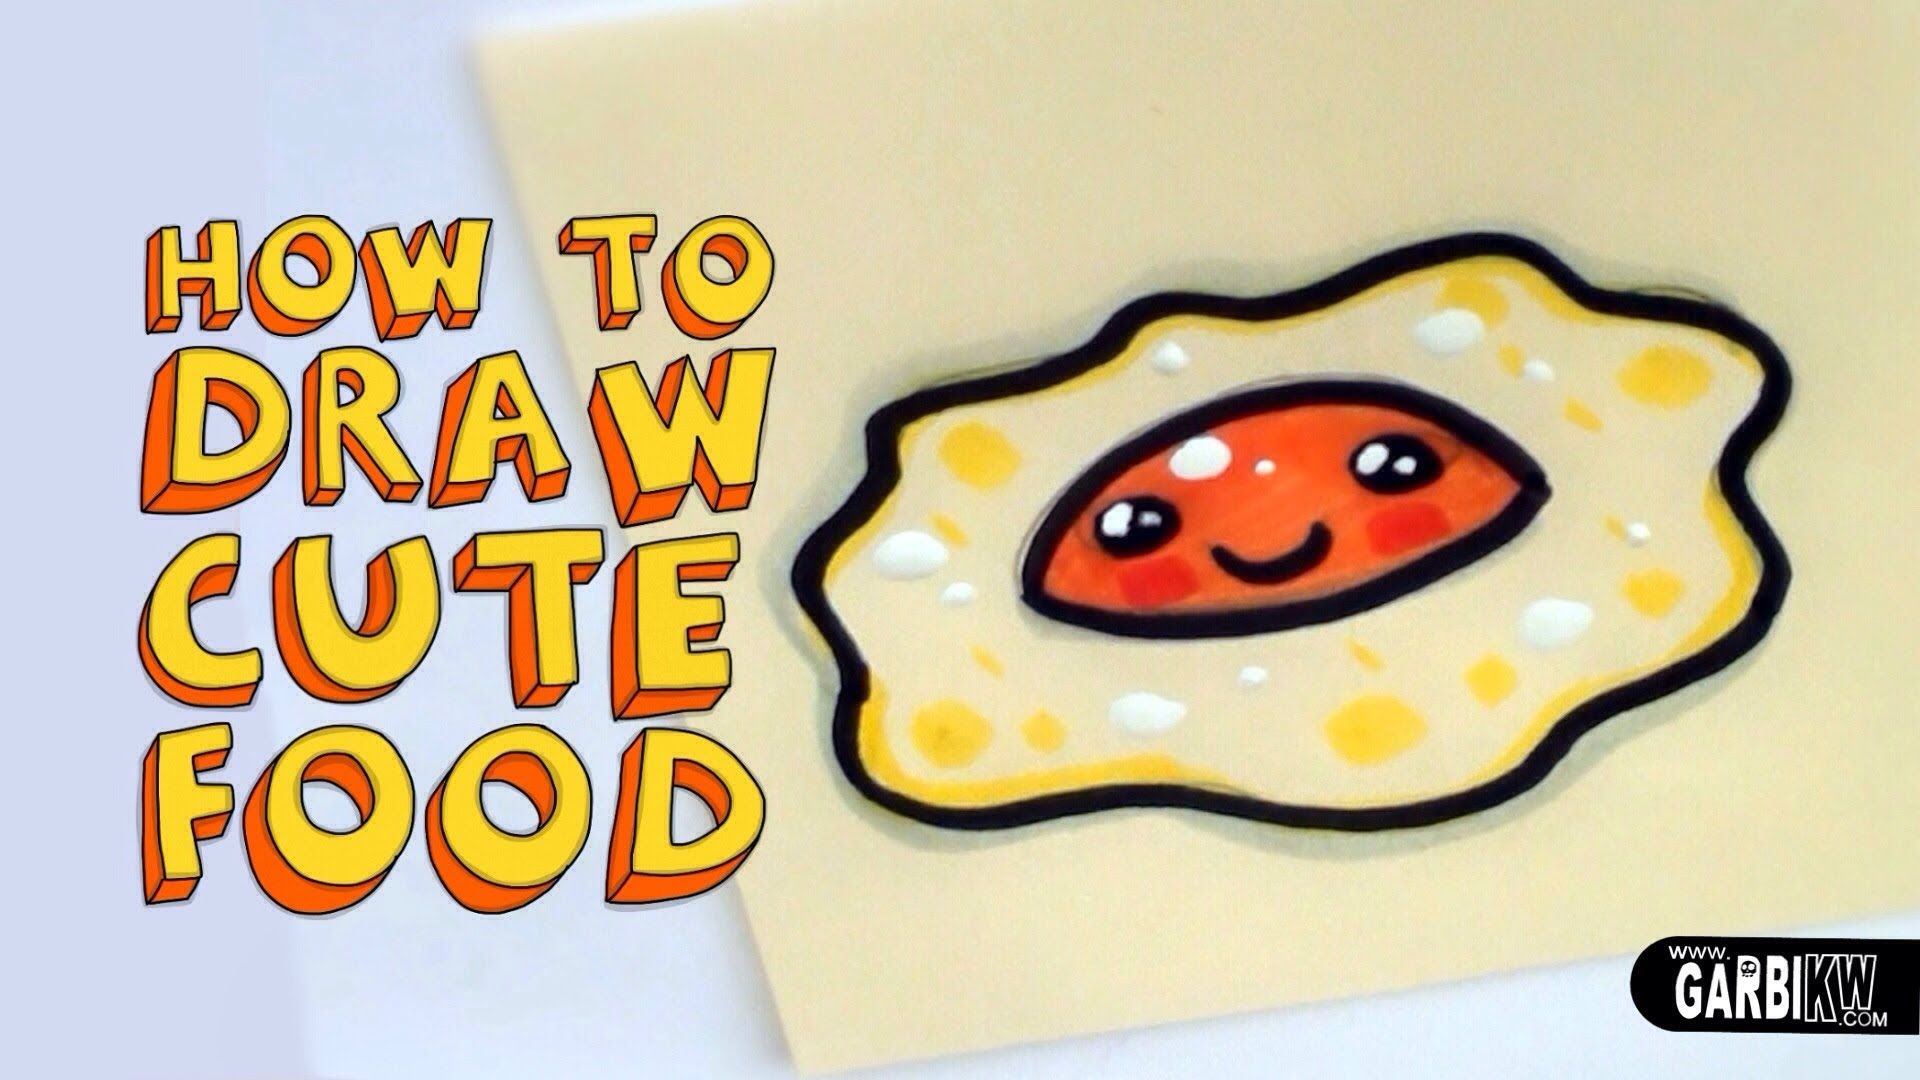 How To Draw a Cute Fried Egg - Kawaii Food - Easy Drawings ...